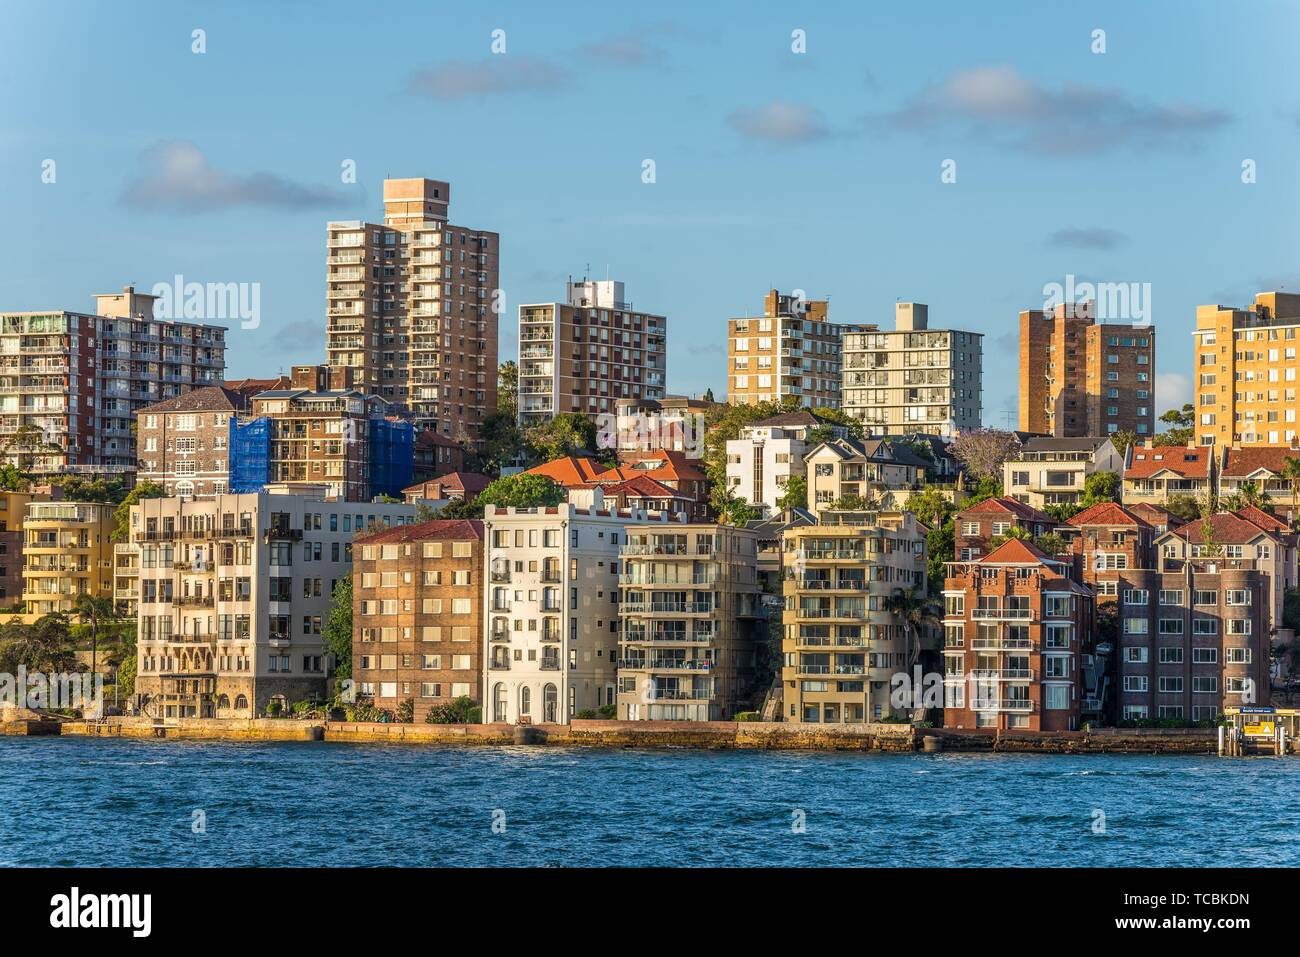 Beautiful part of Sydney Kirribilli with houses and ocean coastline, suburb of Sydney Australia. As the sun sets and casts warm golden color. - Stock Image